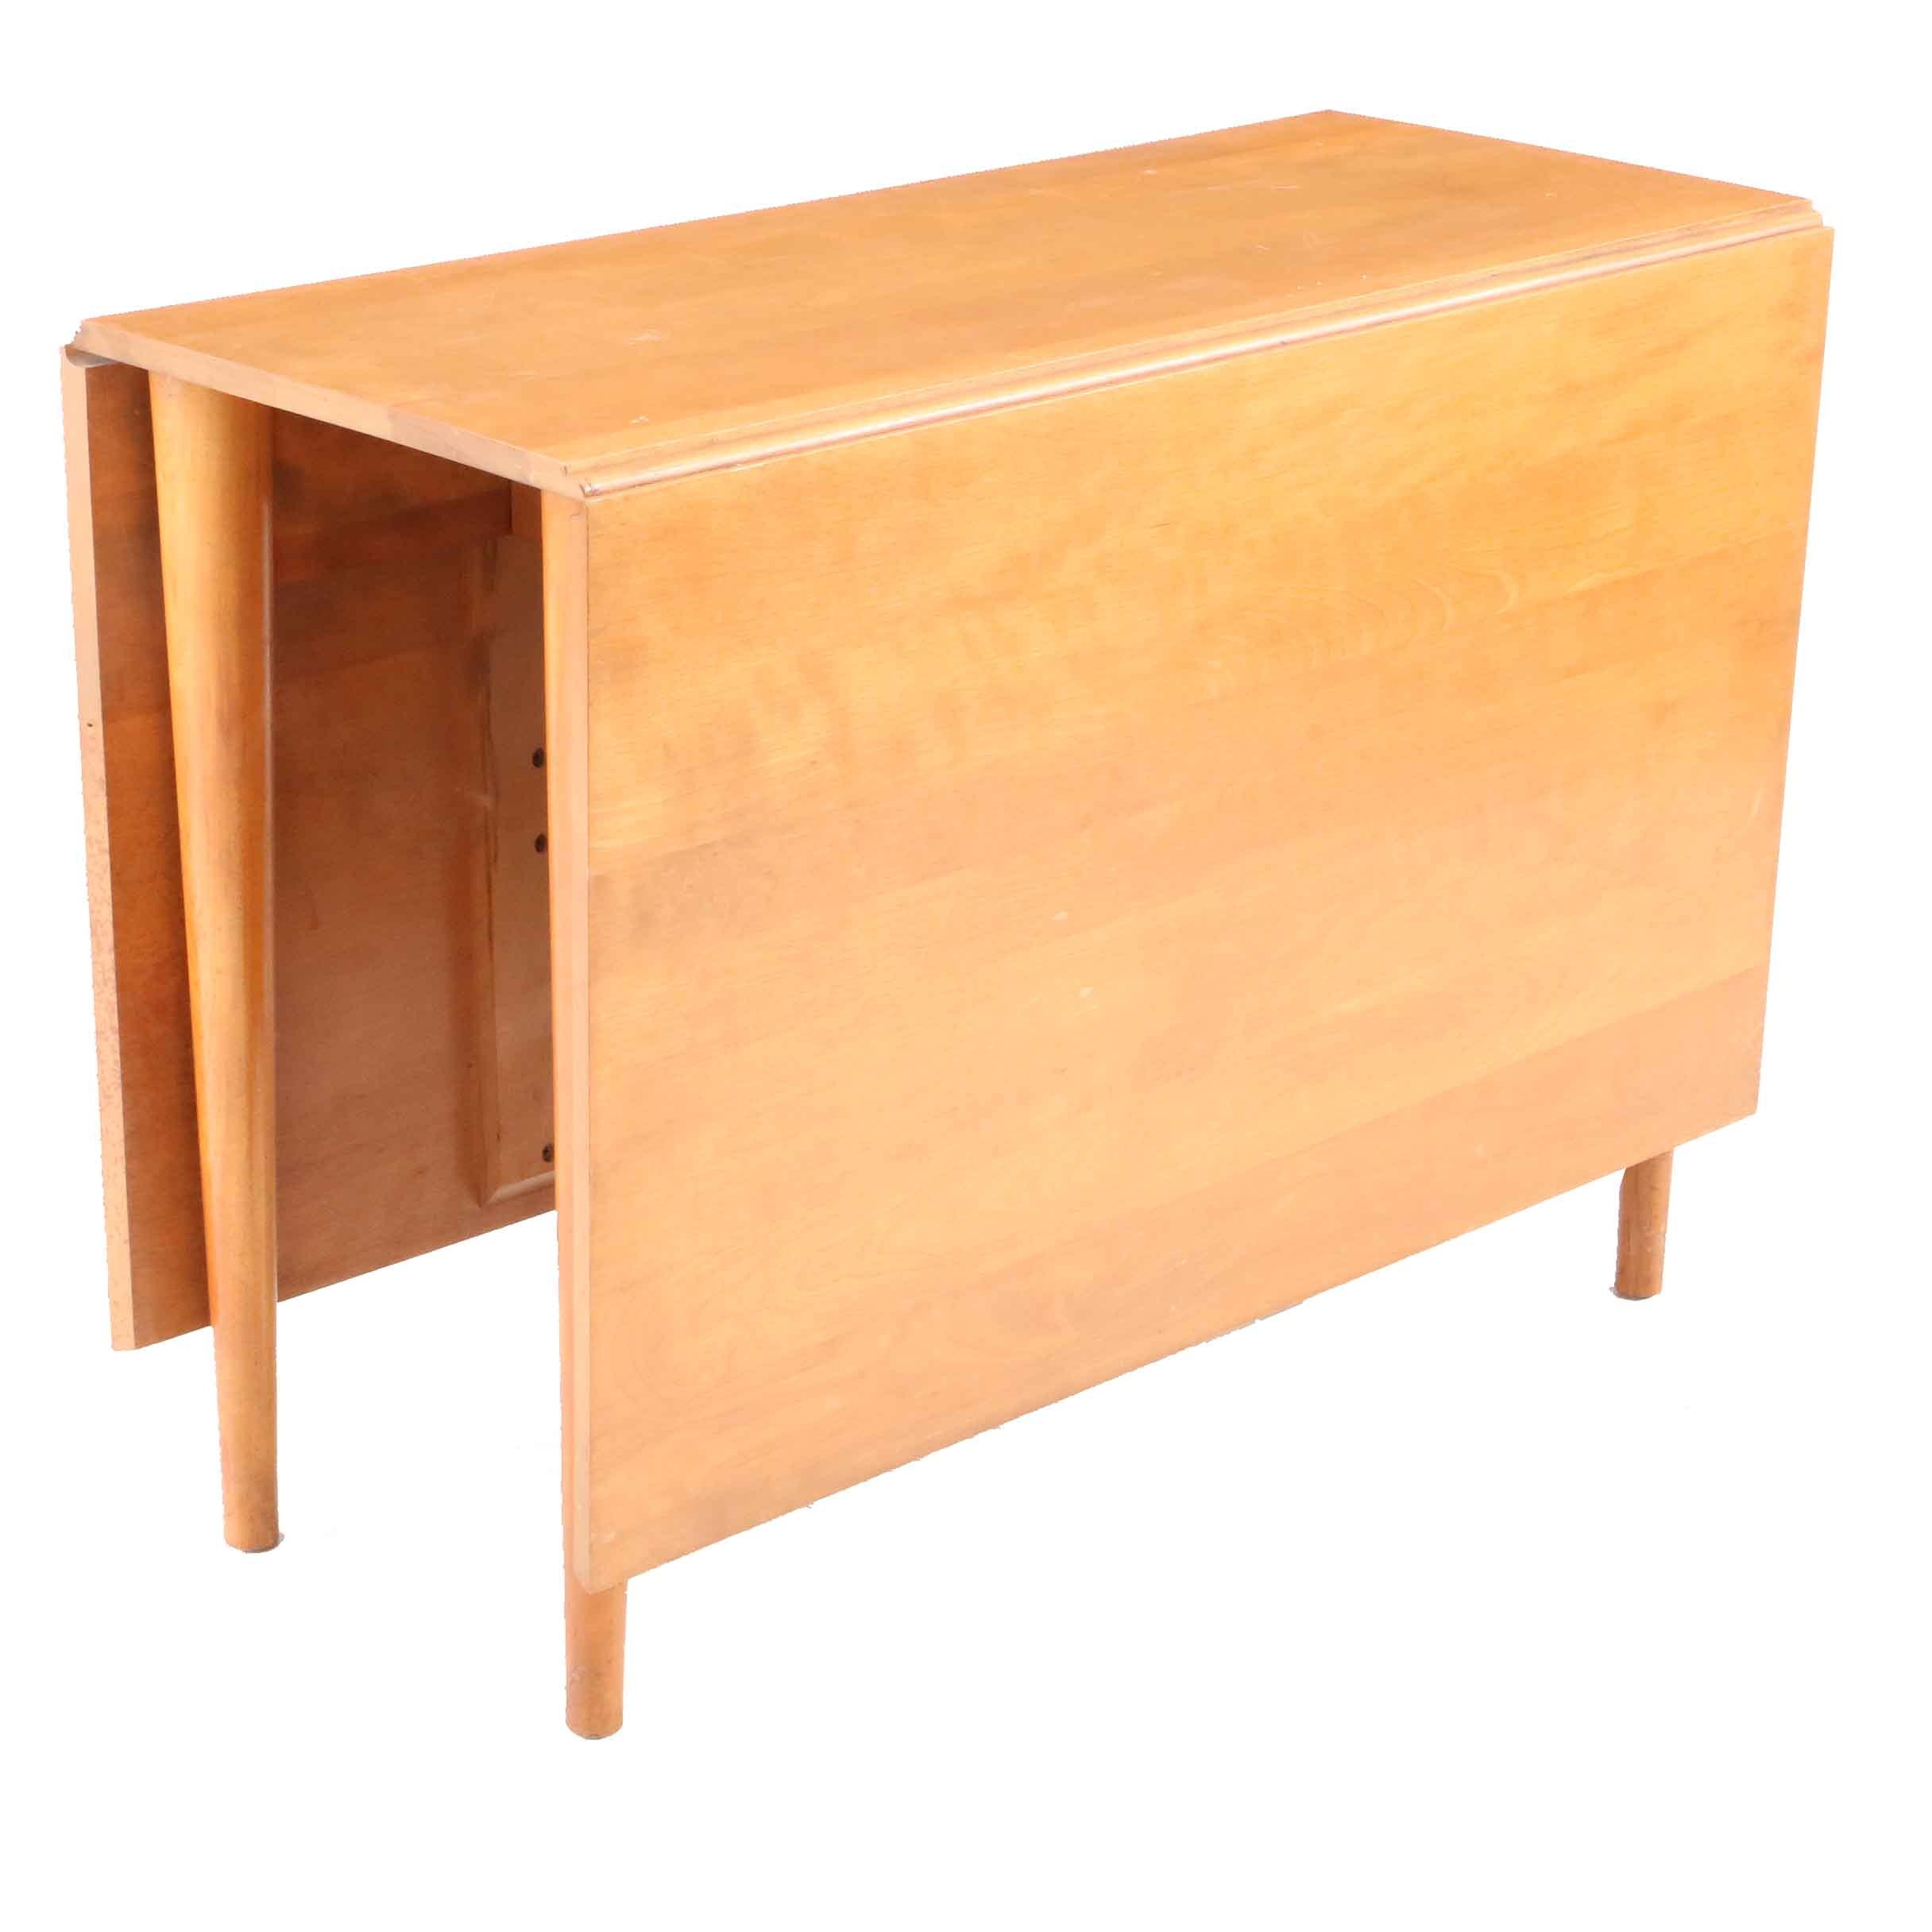 Mid Century Modern Maple Drop Leaf Table by Russel Wright for Conant Ball